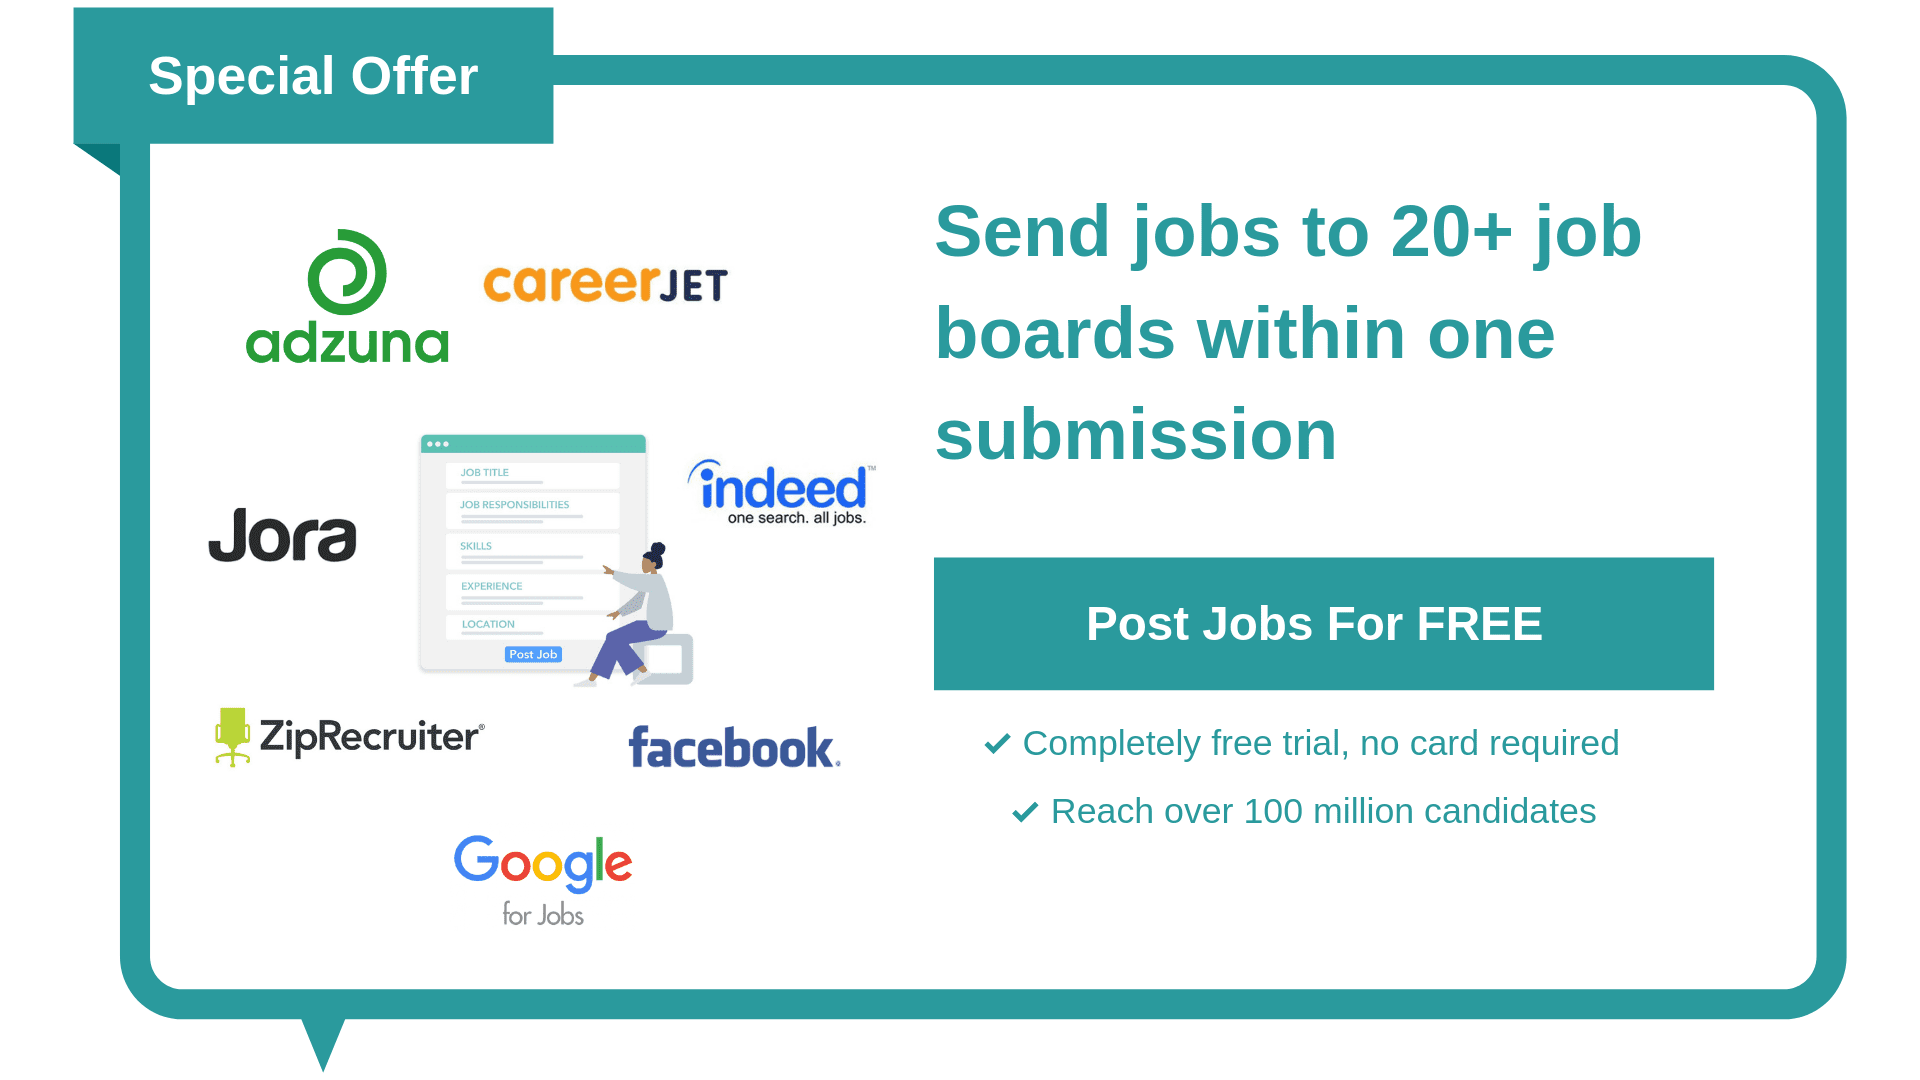 How to post a job on Career builder for free, Career Builder job posting, Career builder Pricing, Pricing Plans Guidelines, Post a free job, How to sponsor a job on Career Builder, free job listing, post a job on multiple job boards